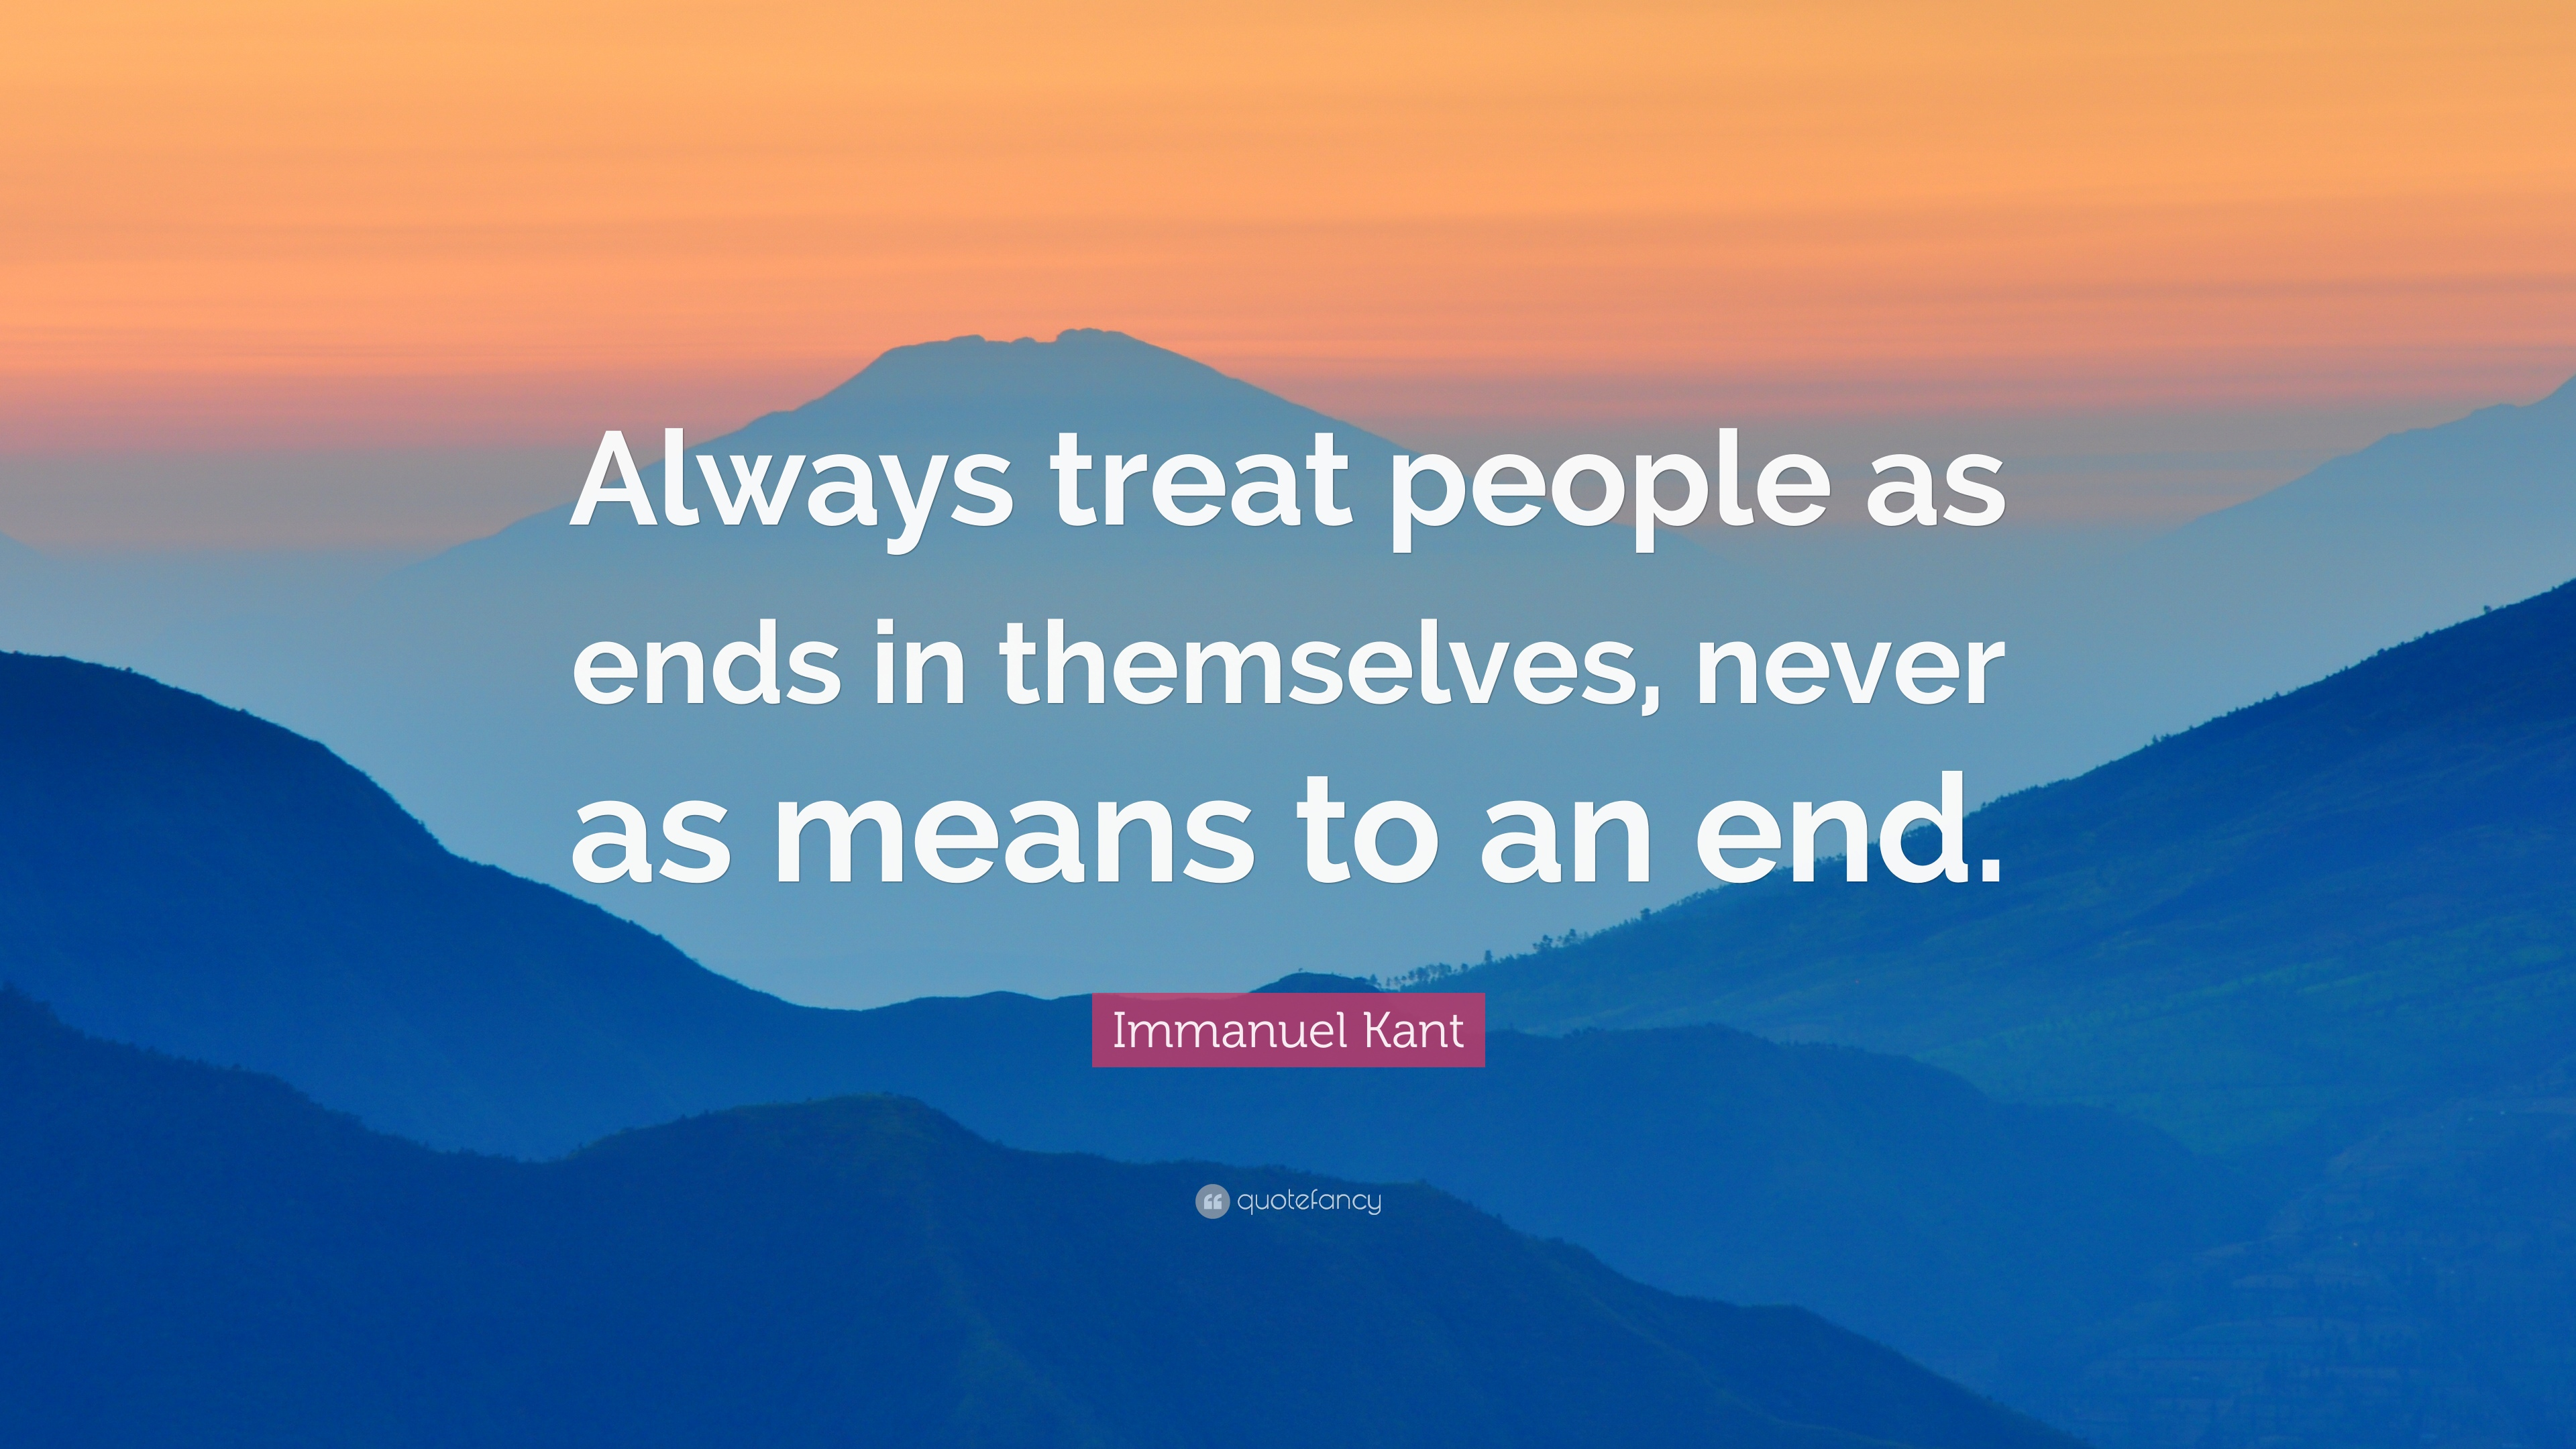 Immanuel Kant Quote Wallpaper Immanuel Kant Quote Always Treat People As Ends In